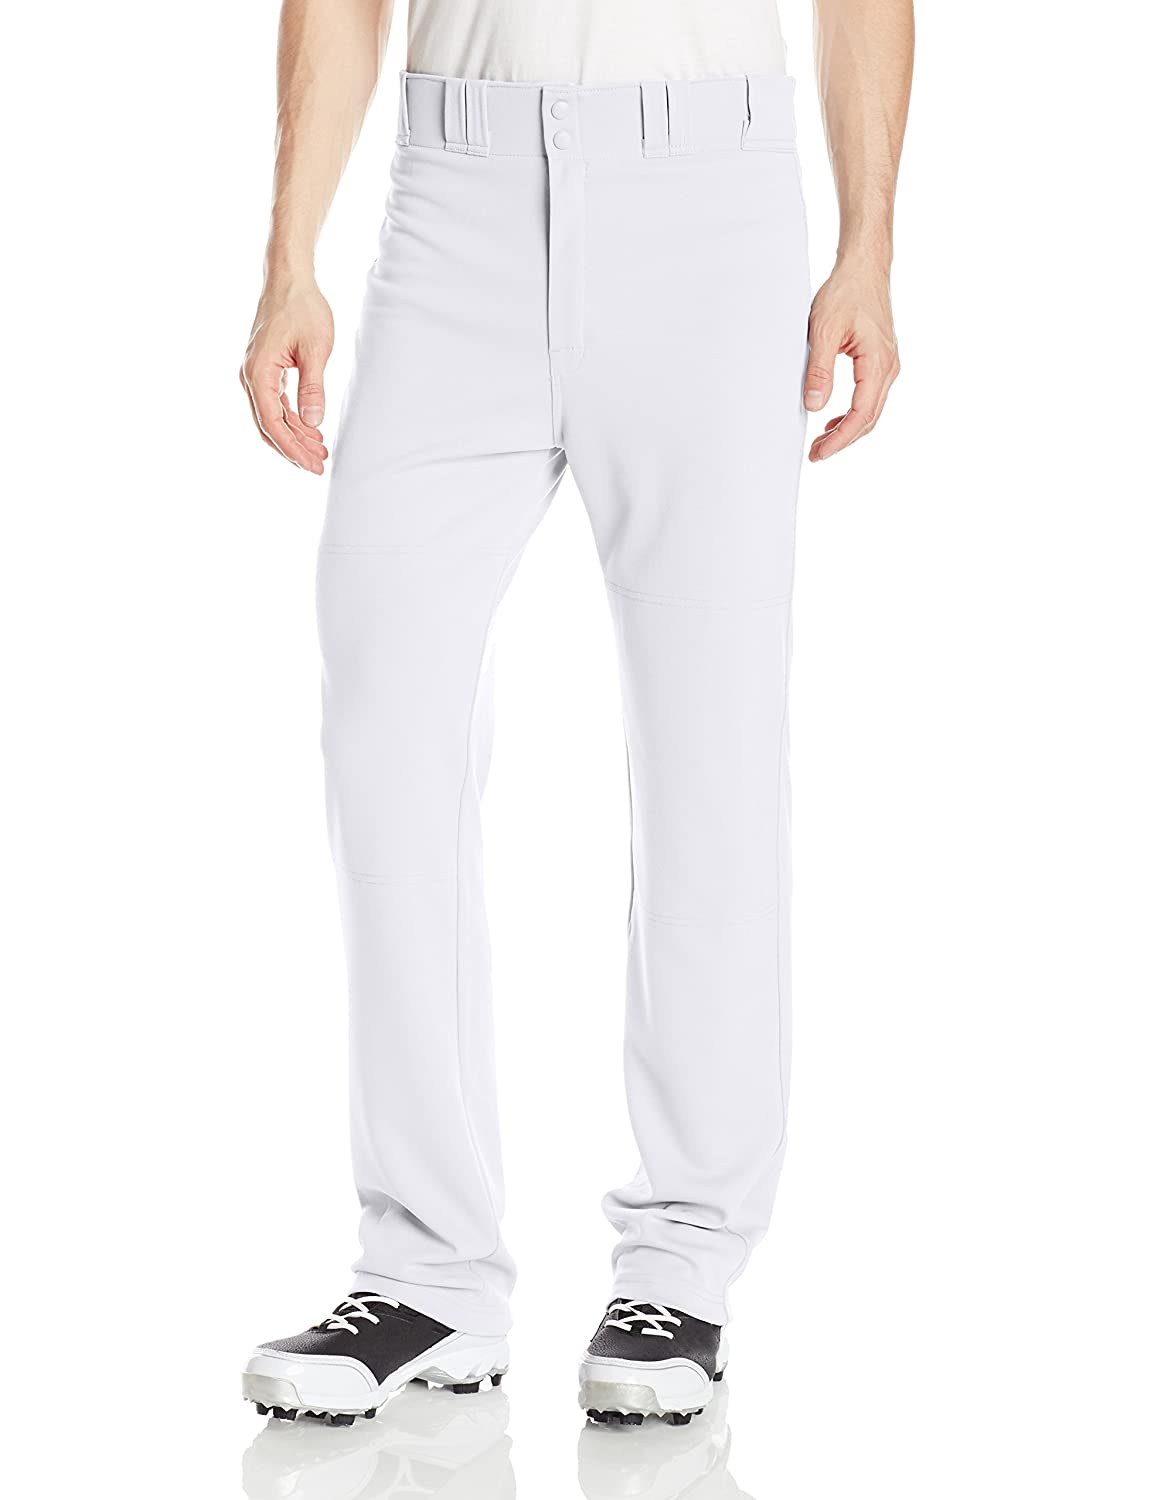 Easton Men's Rival 2 Solid Baseball Pants Easton Sports Inc. A167114-P